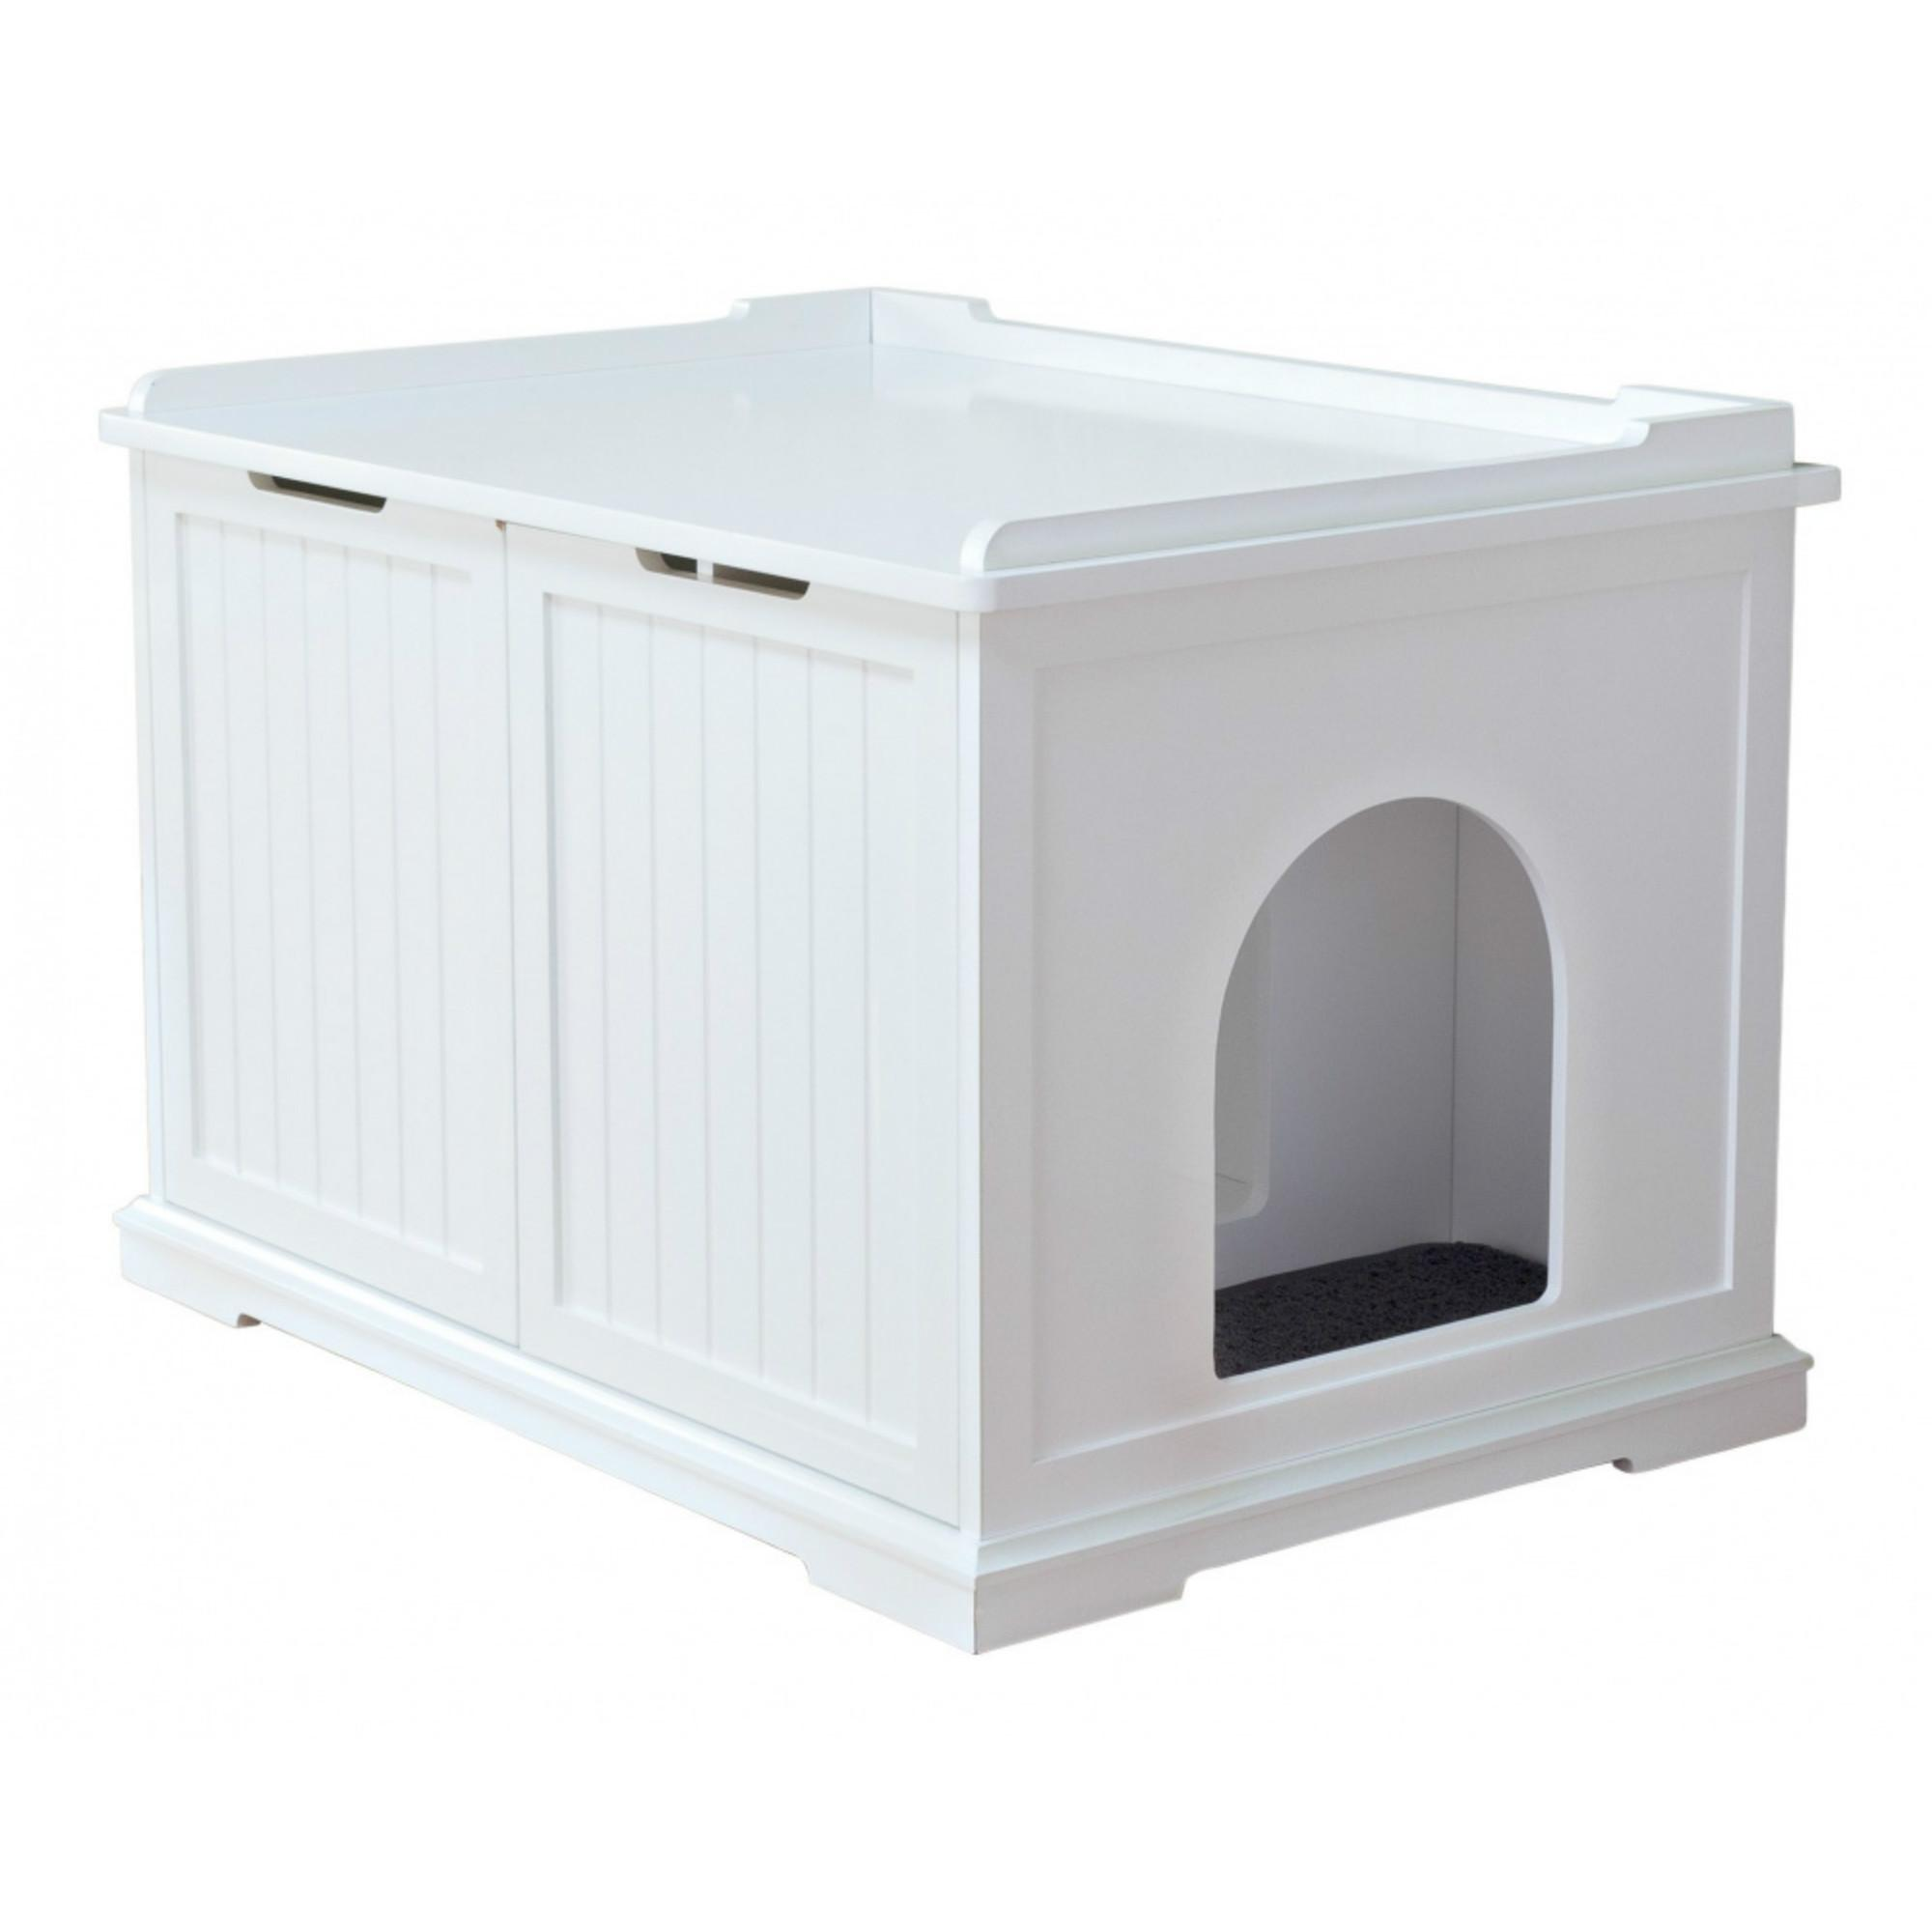 Trixie XL Wooden Cat House & Litter Box - White